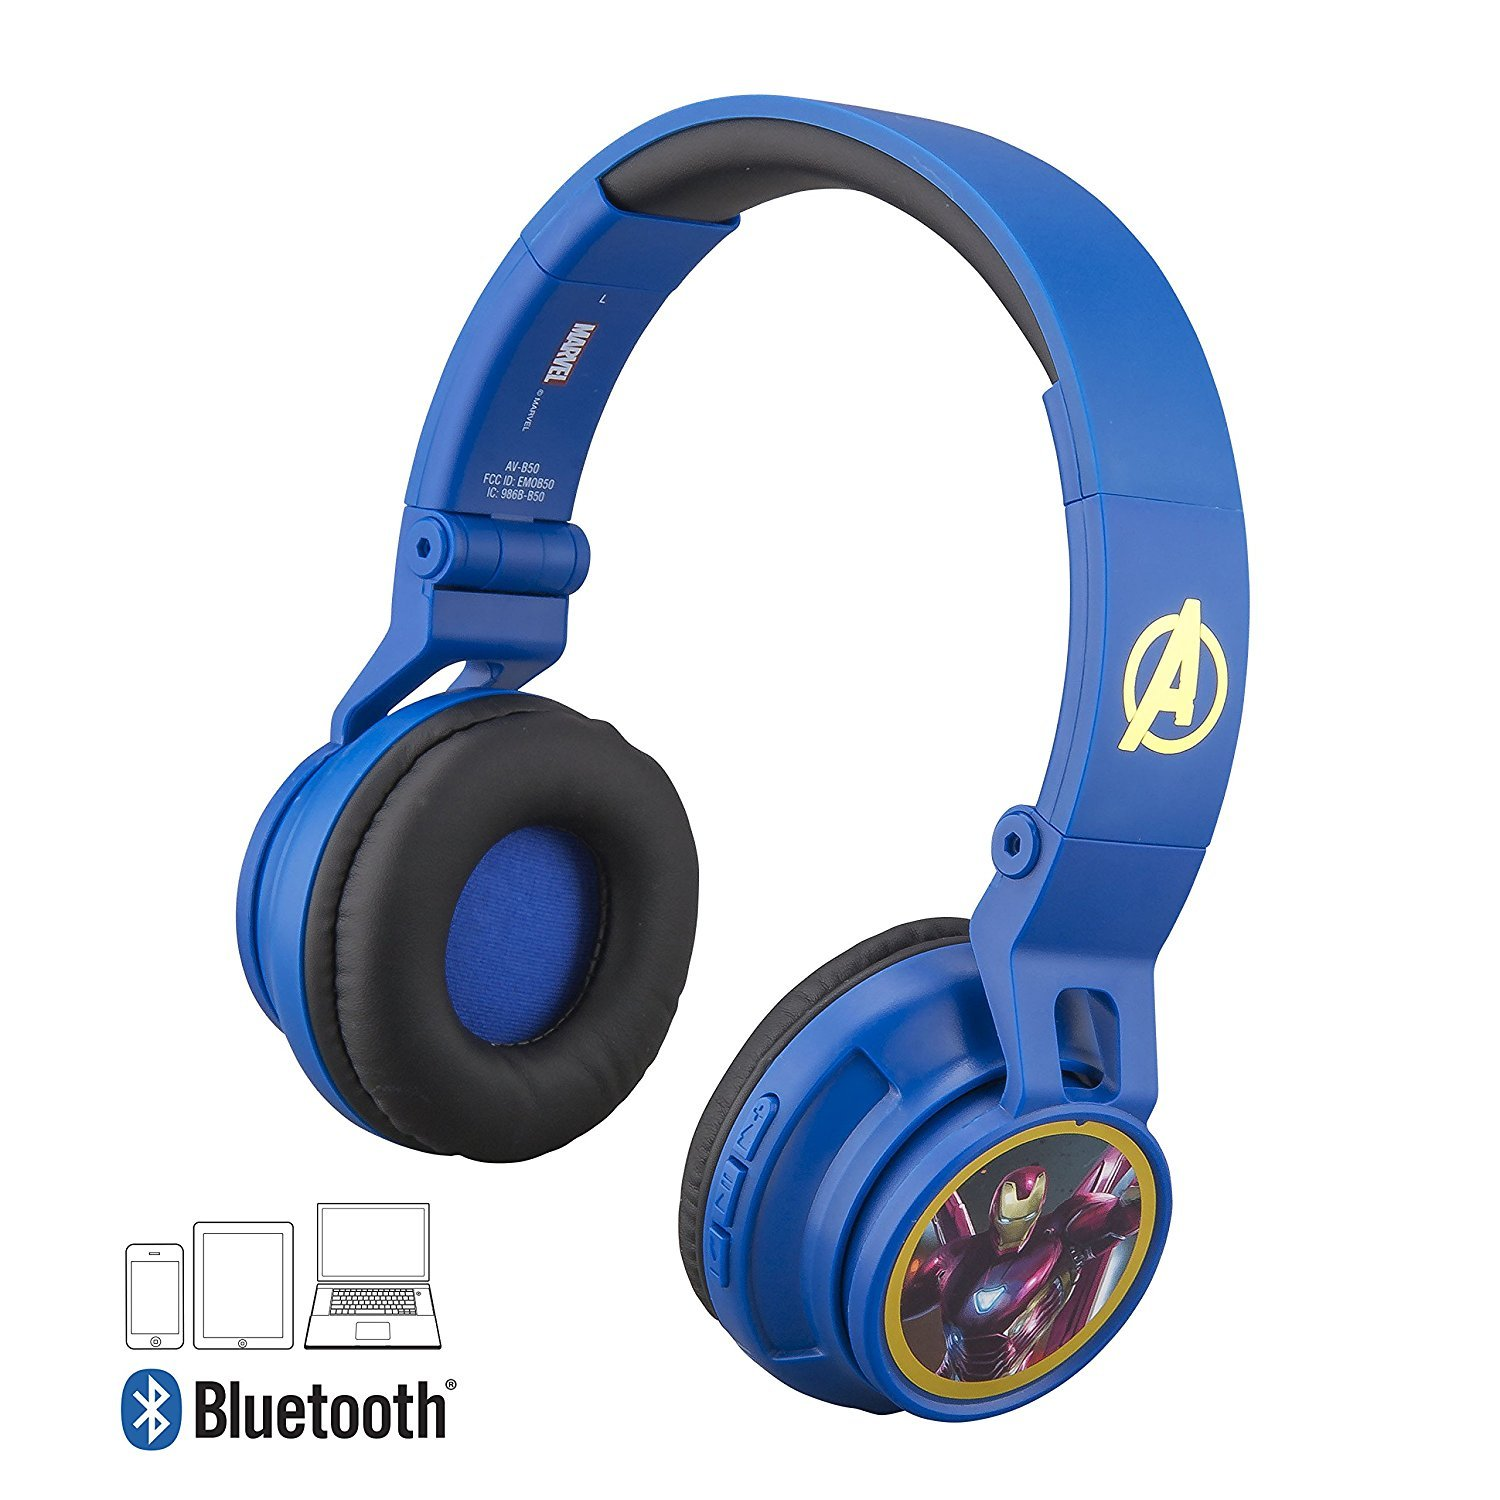 Avengers Infinity War Bluetooth Headphones for Kids Wireless Rechargeable Kid Friendly Sound (Avengers Infinity War)